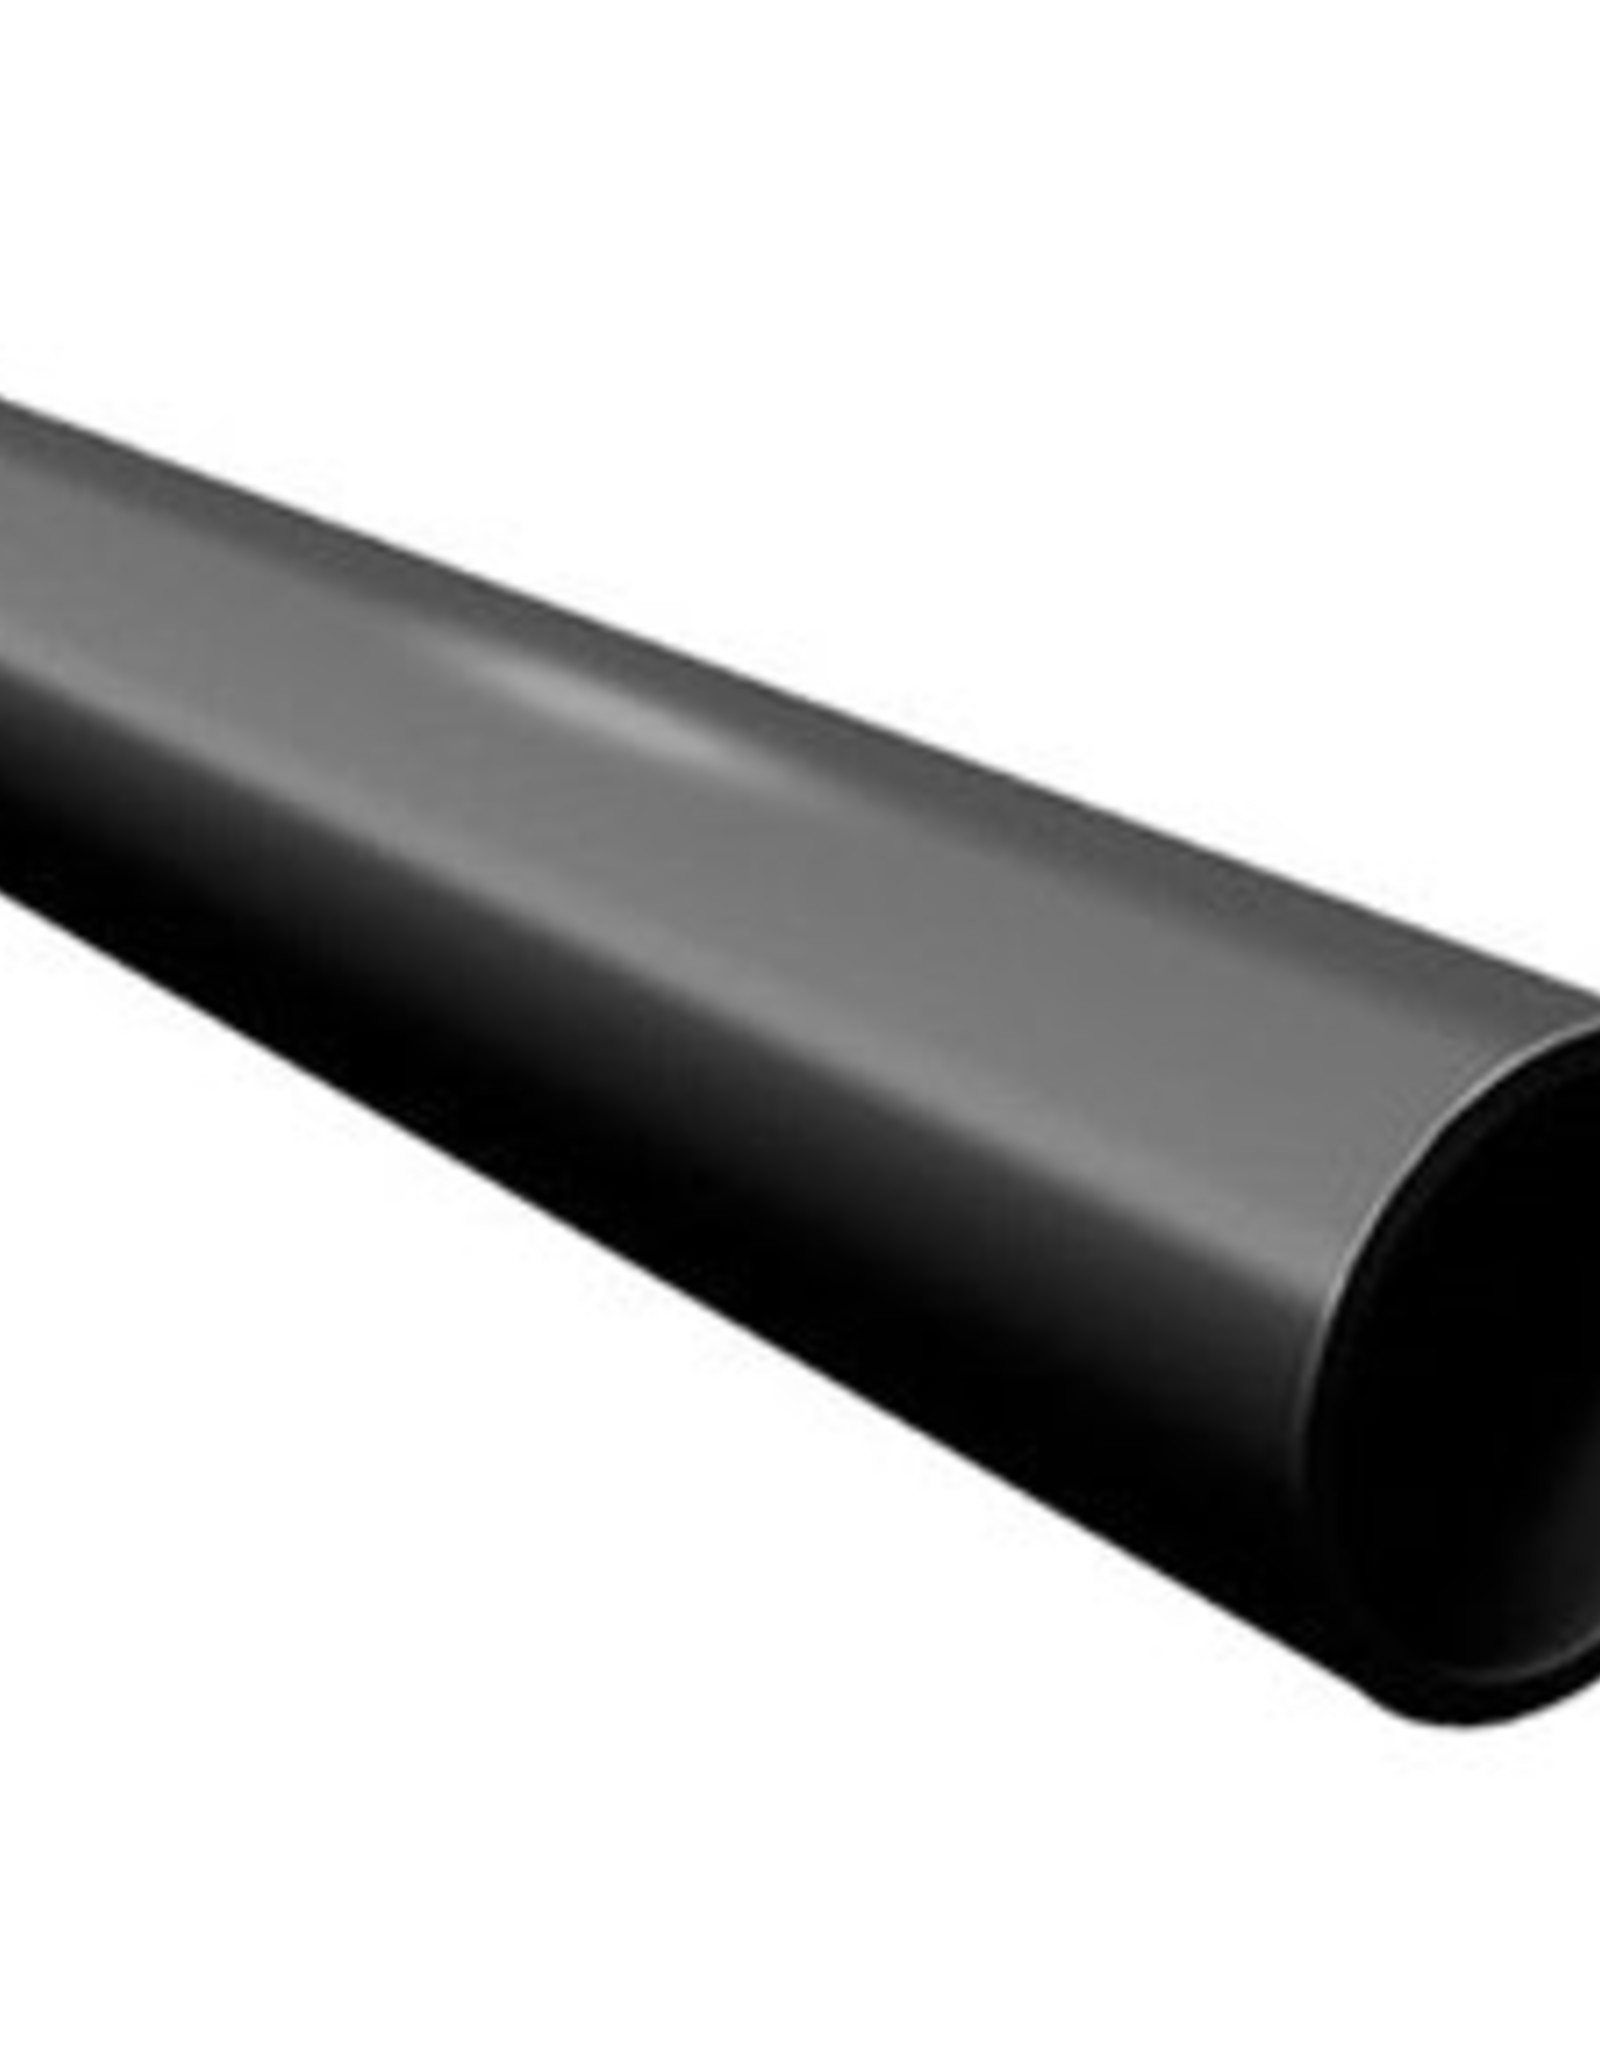 "4"" X 12' ABS DWV CELLCORE PIPE"